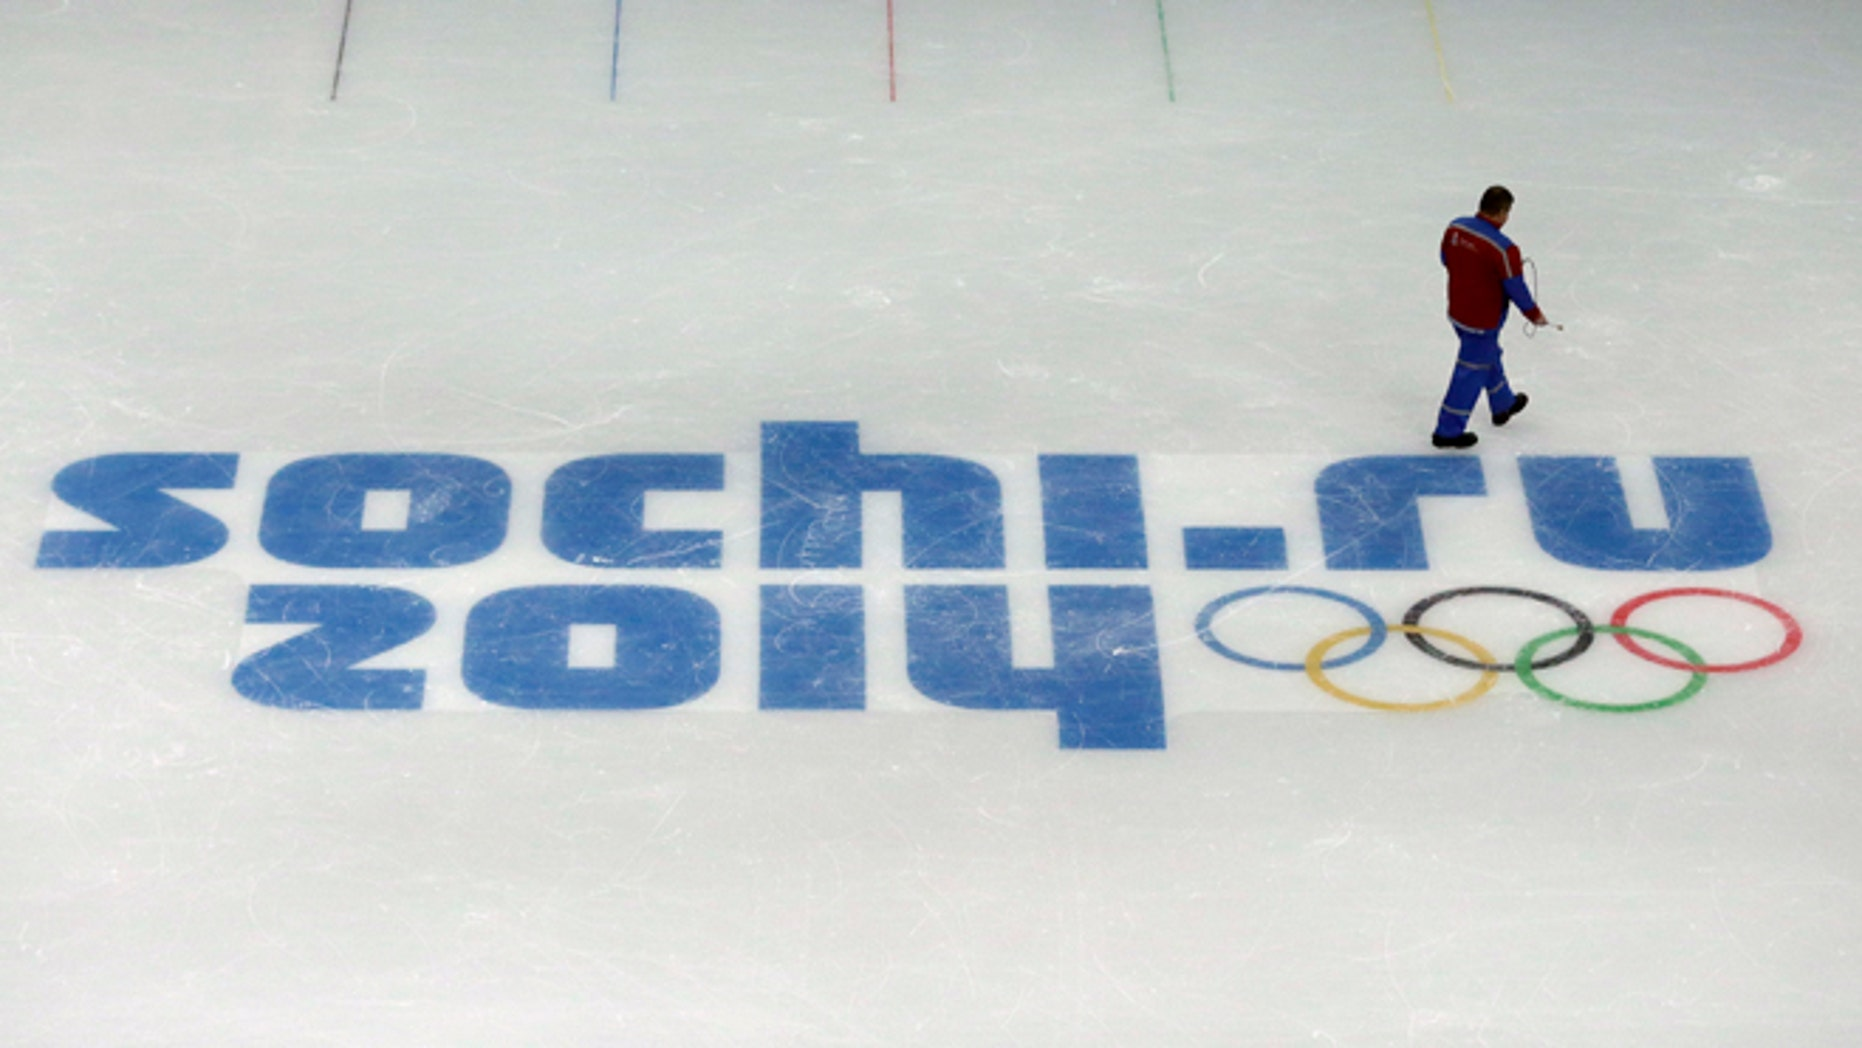 Jan. 25, 2014: A worker leaves after checking ice conditions at the Iceberg Skating Palace, where the figure skating and short track speed skiing will take place, at the 2014 Winter Olympics in Sochi, Russia. The Olympics begin Feb. 7th.